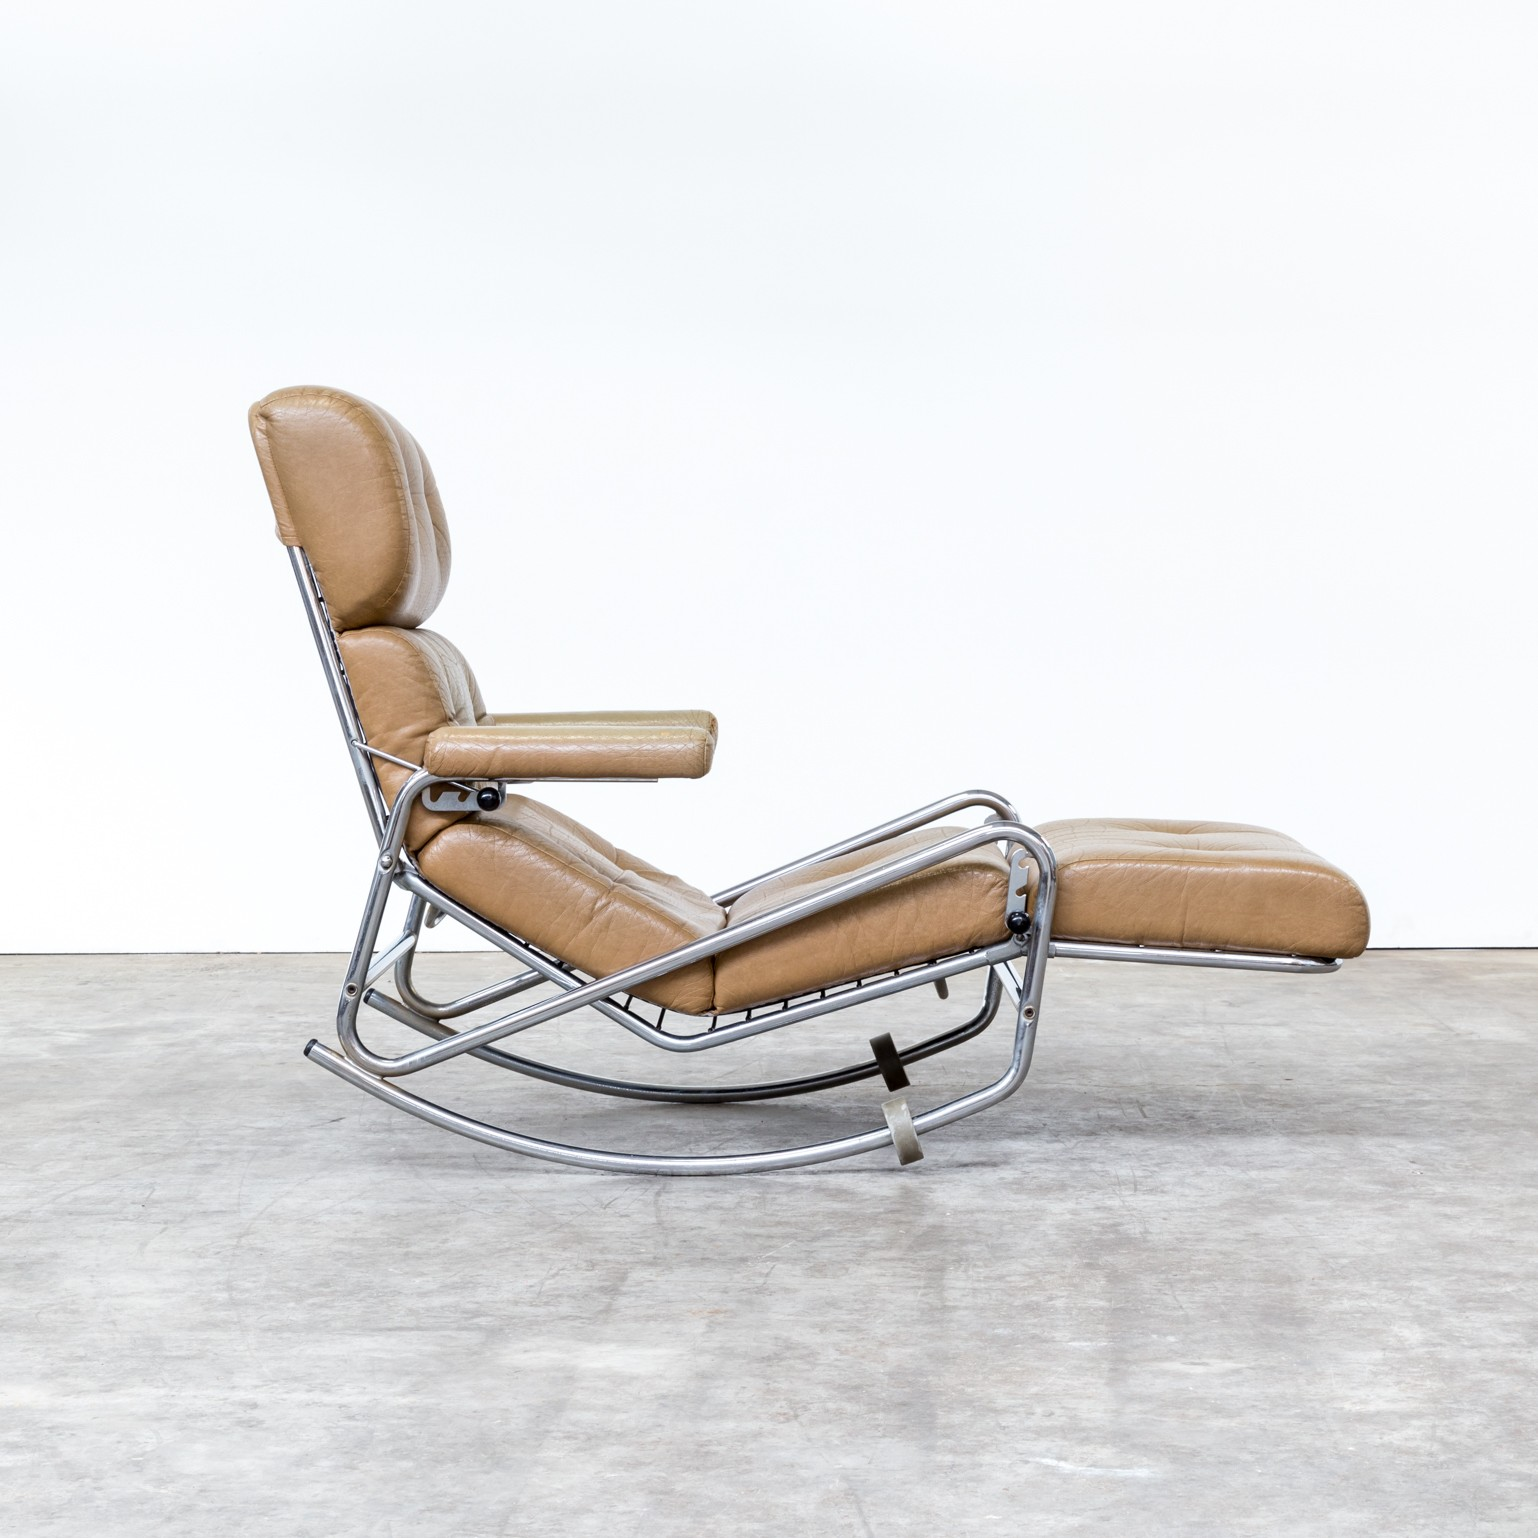 French lounge rocking chair for Lama 1960s Design Market